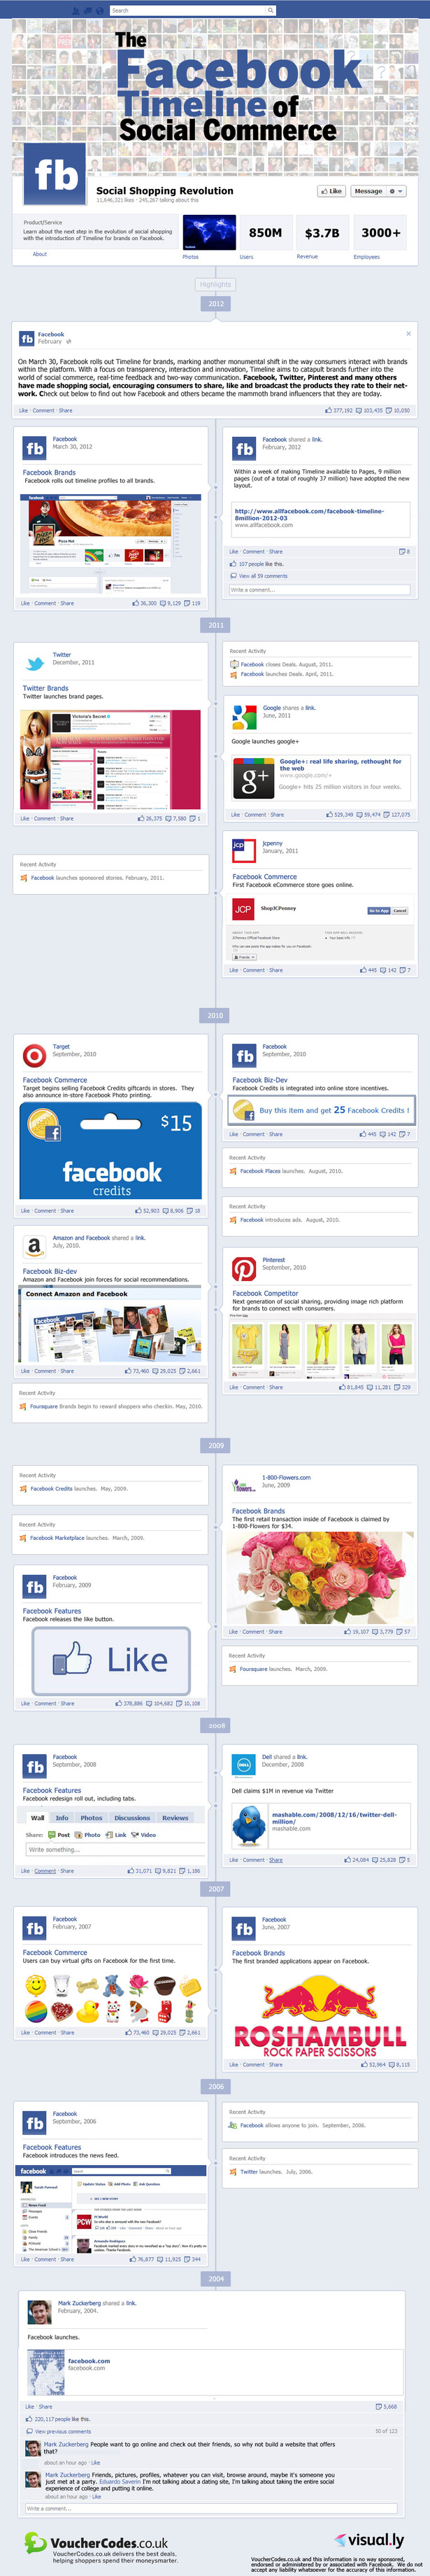 How Will Social Shopping Continue To Evolve With The Introduction Of Timeline For Brands On Facebook? #infographic